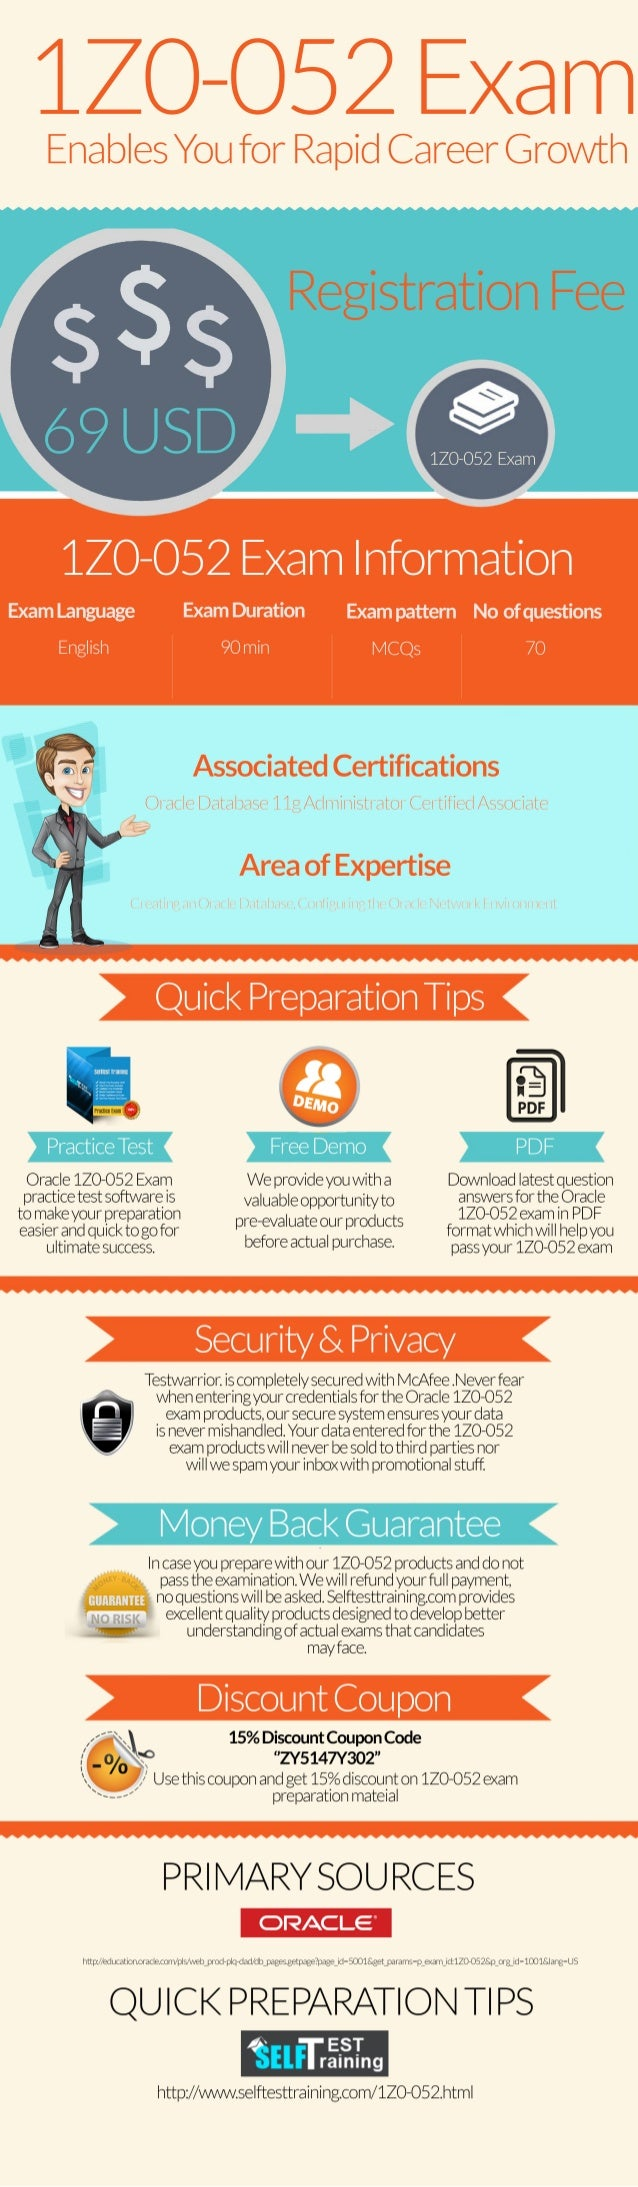 Latest 1z0-052 exam questions & practice test [infographic]